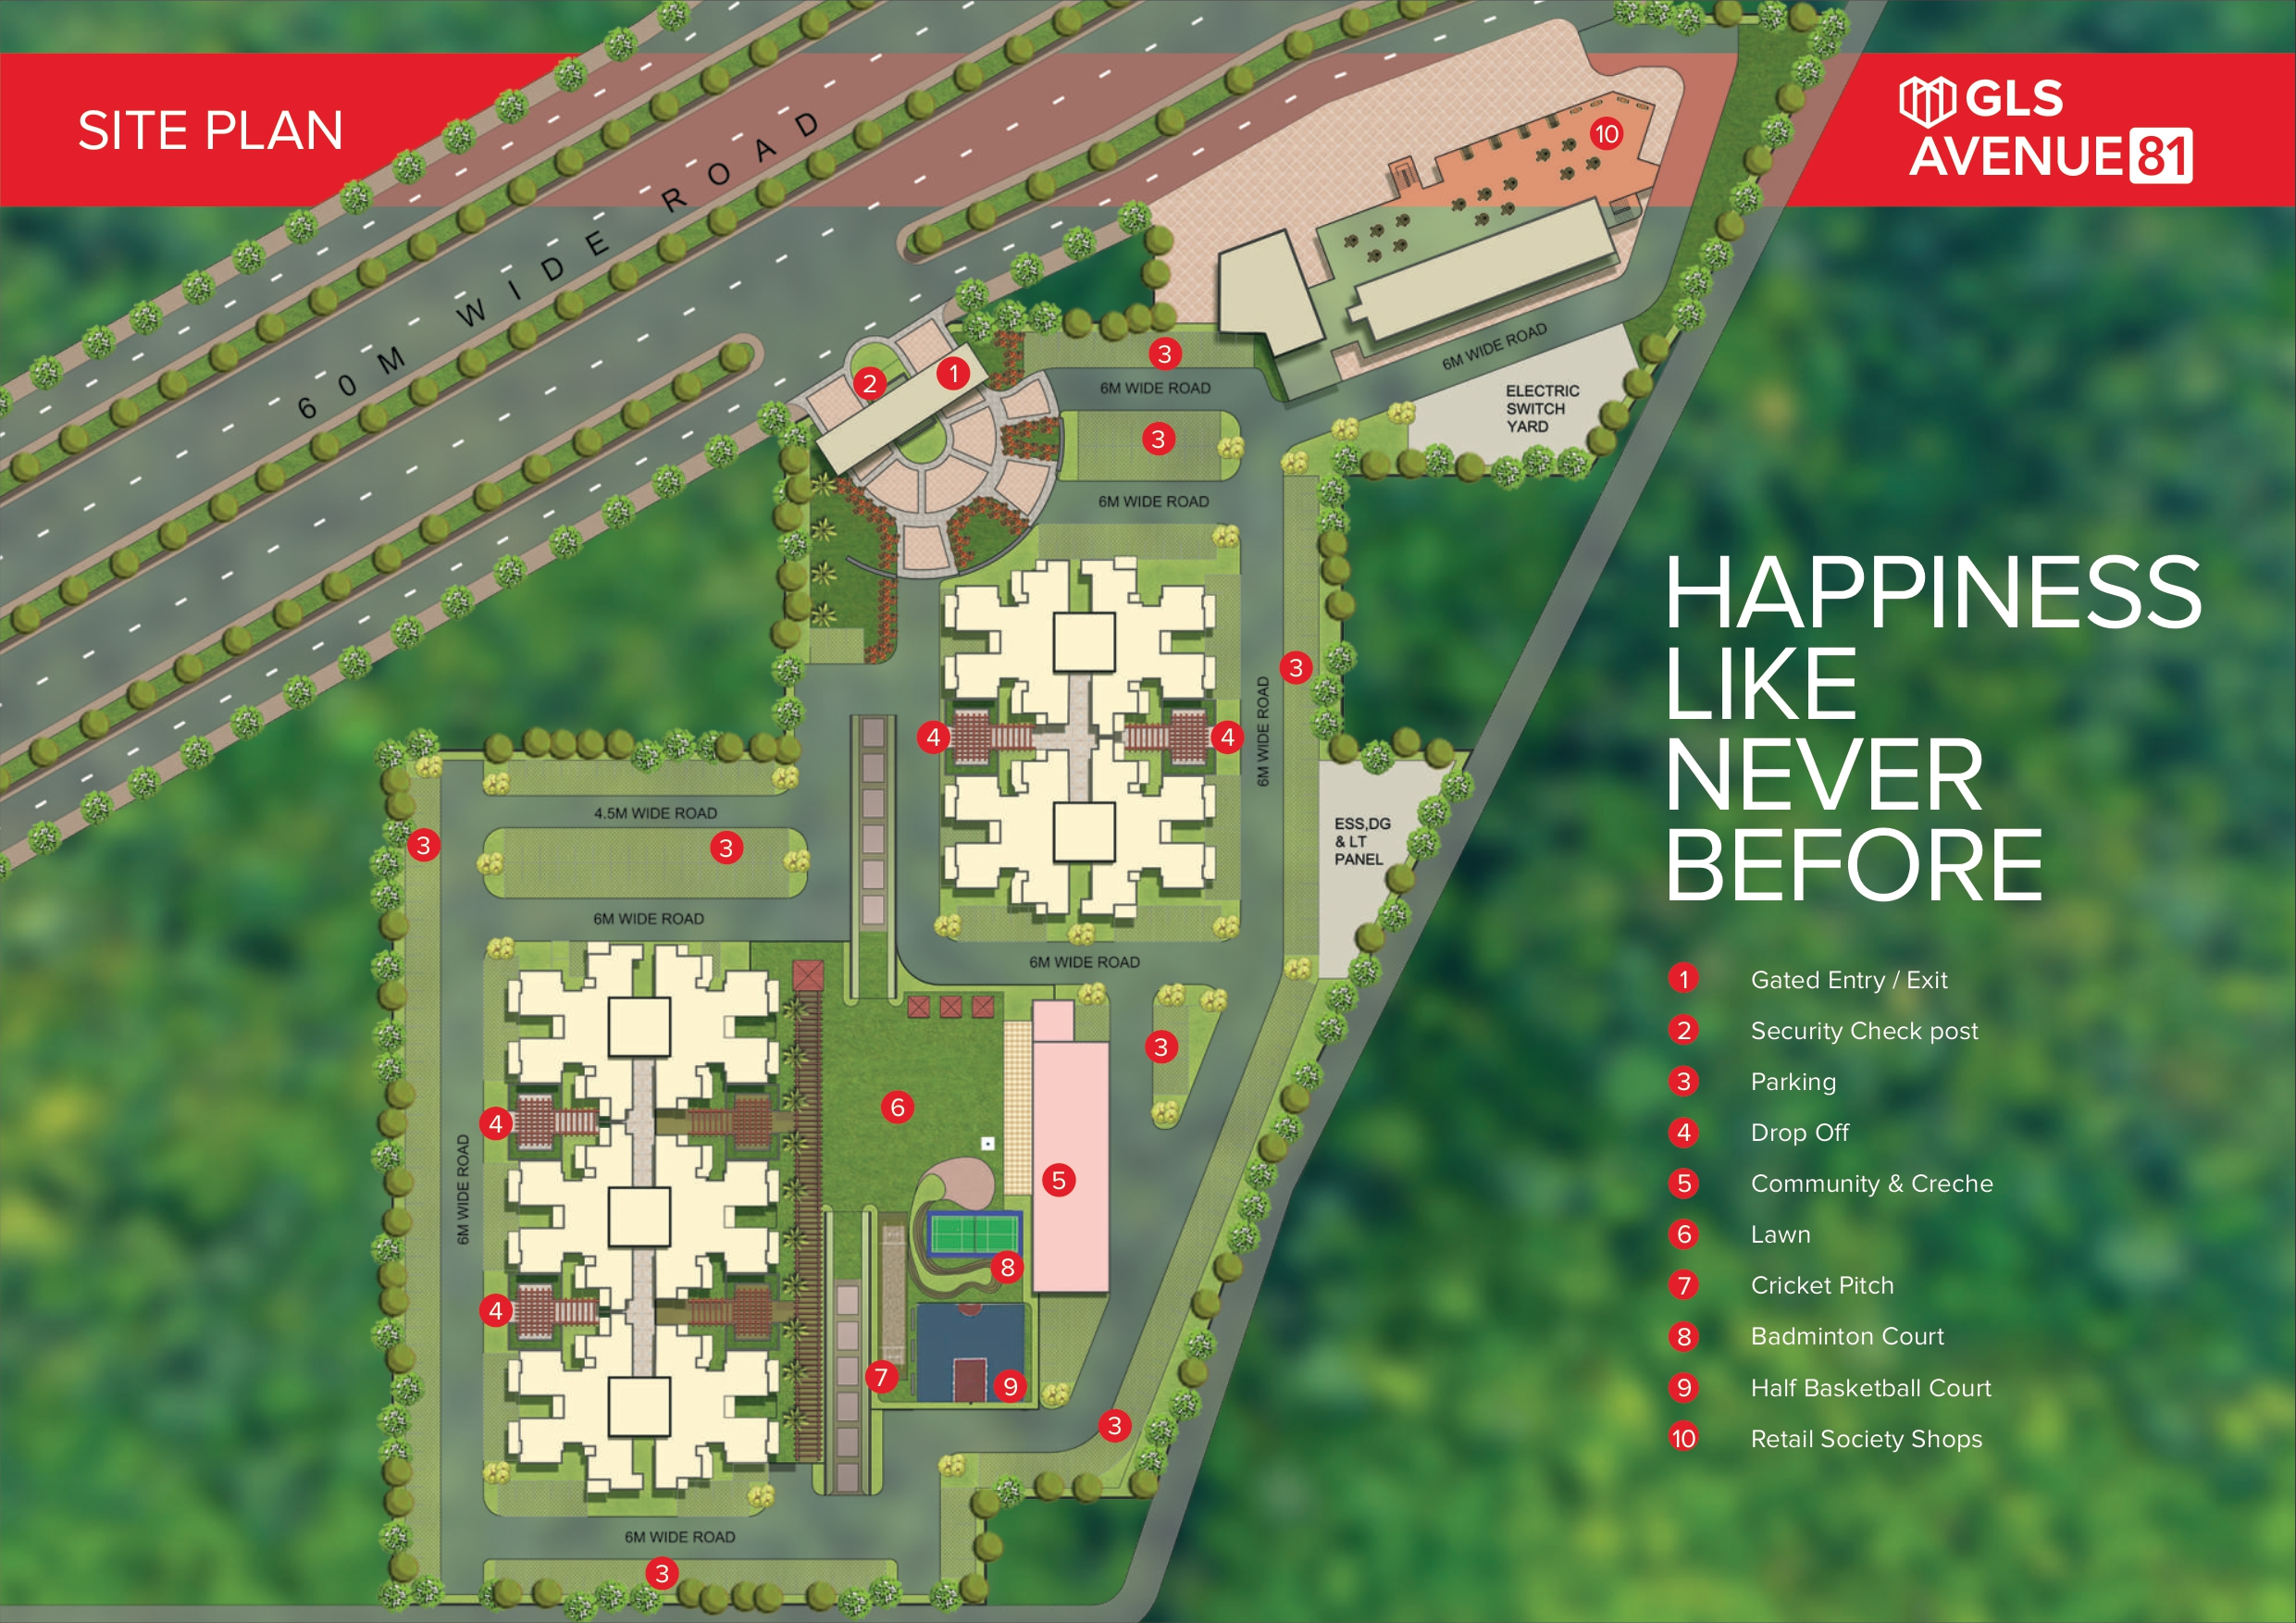 GLS Avenue 81 Layout Plan